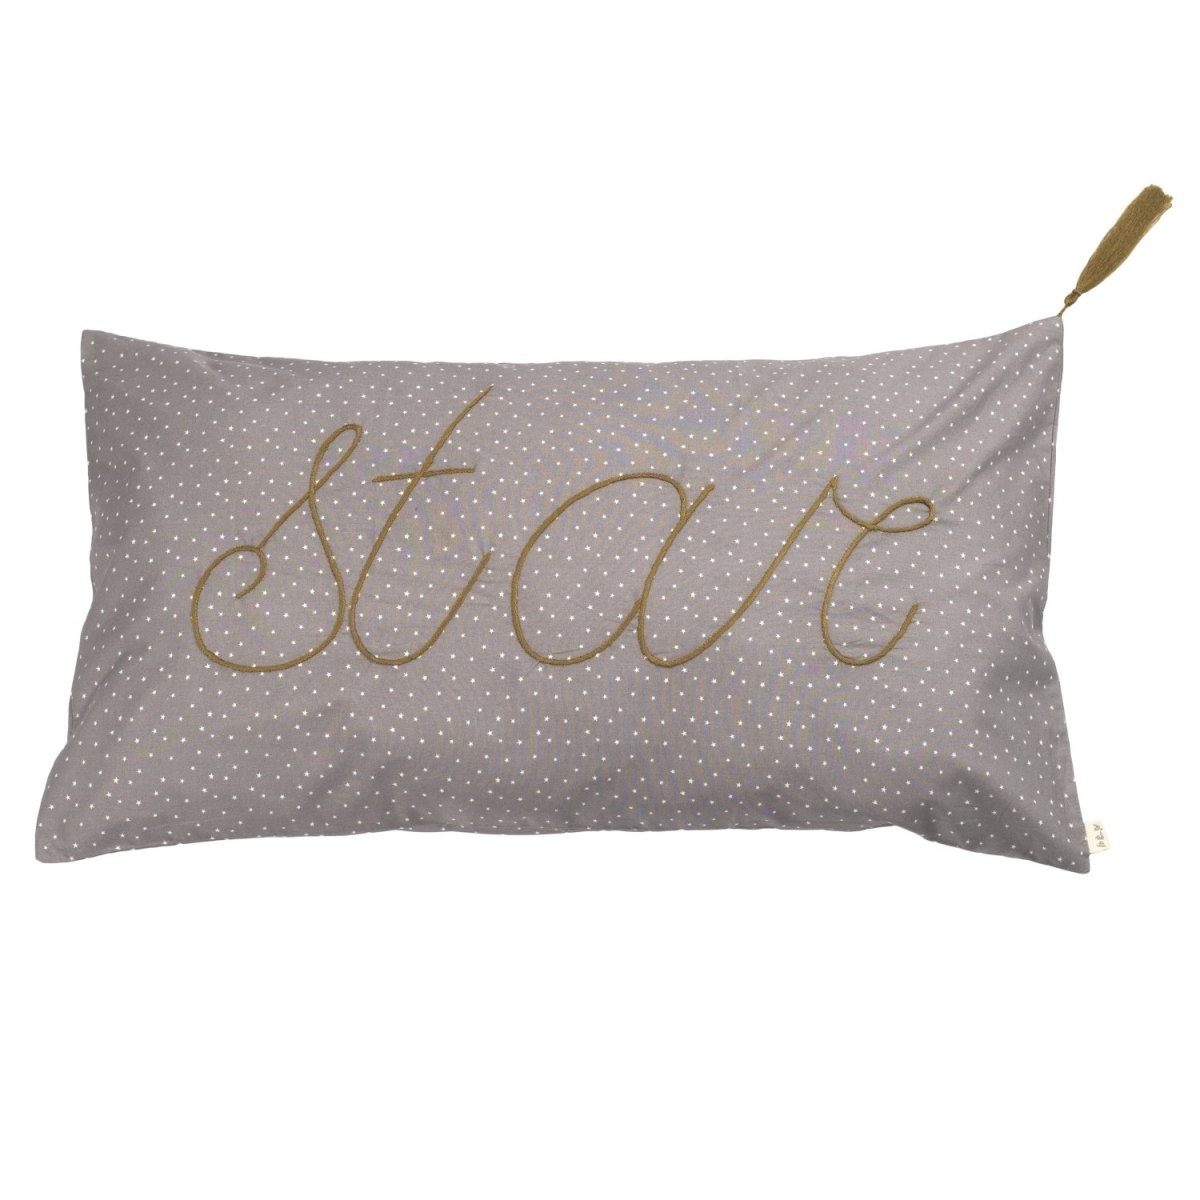 Cushion Message stars silver grey with white stars - Numero 74